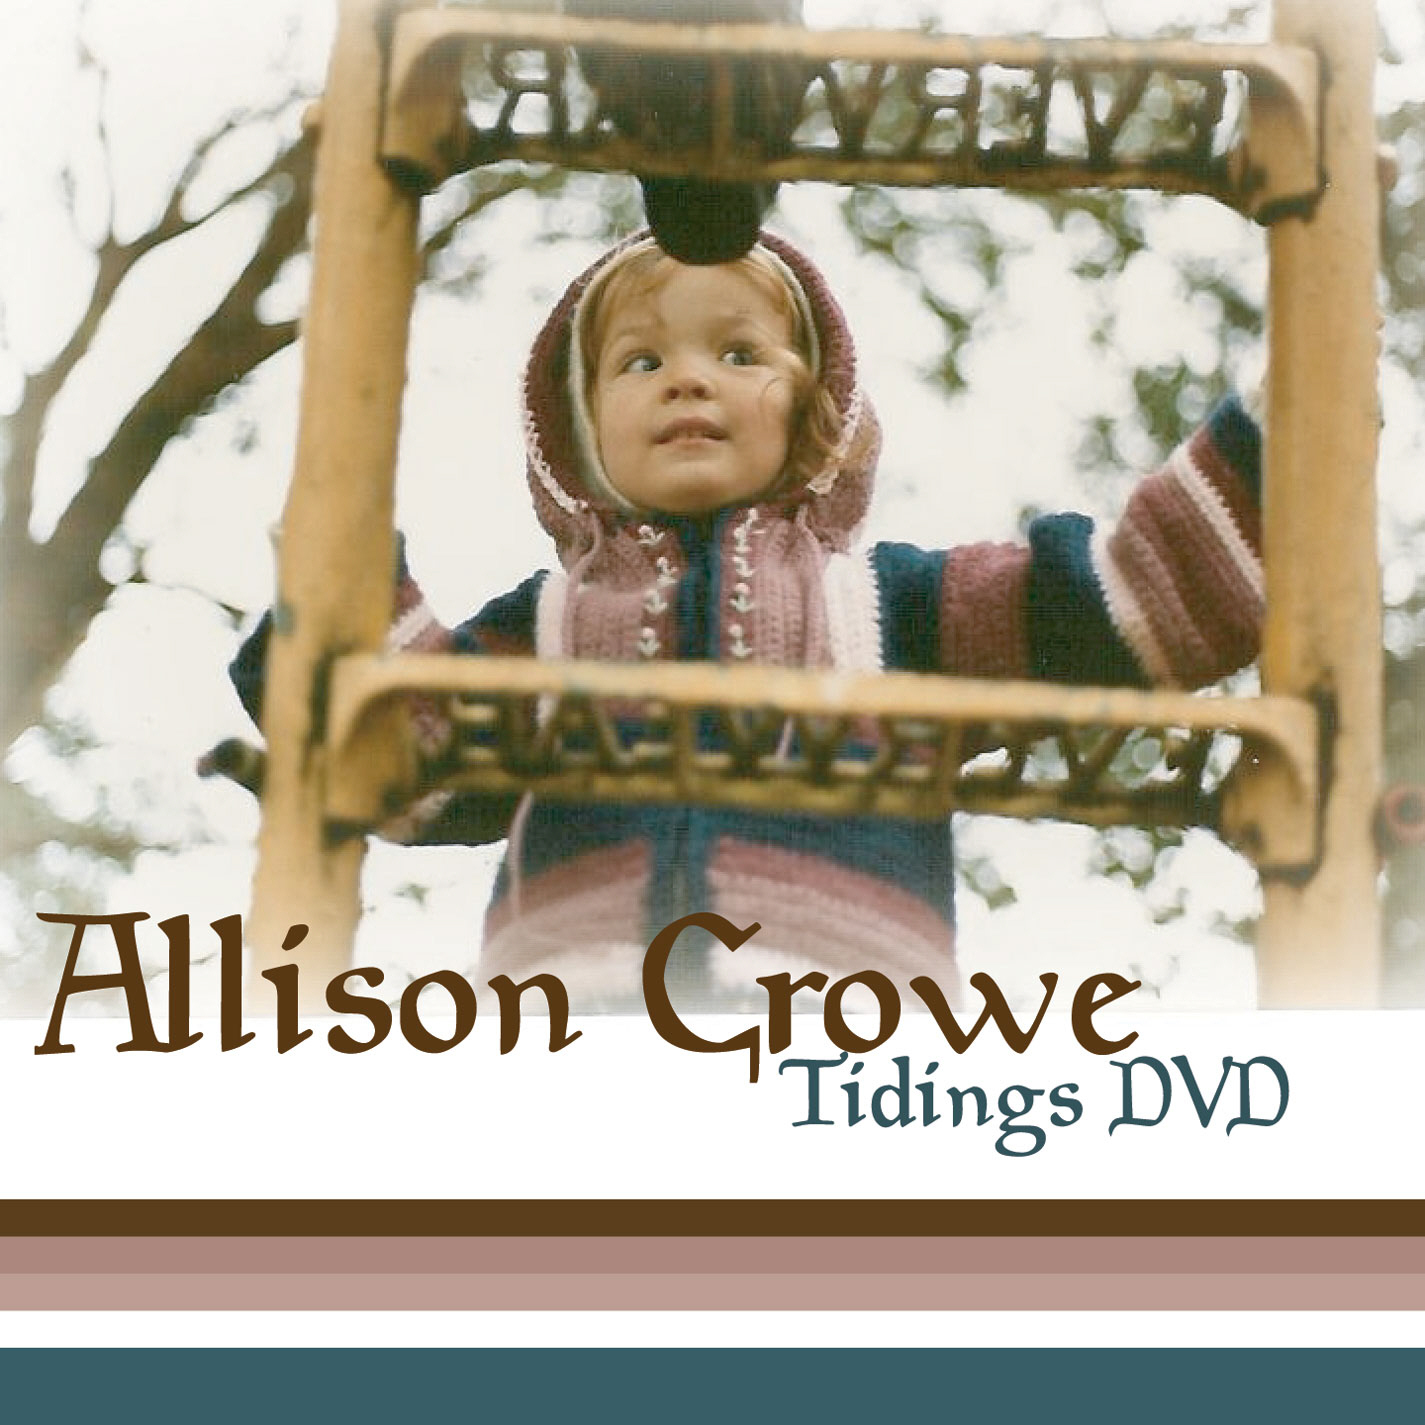 Tidings Fan Club DVD - Allison Crowe - cover